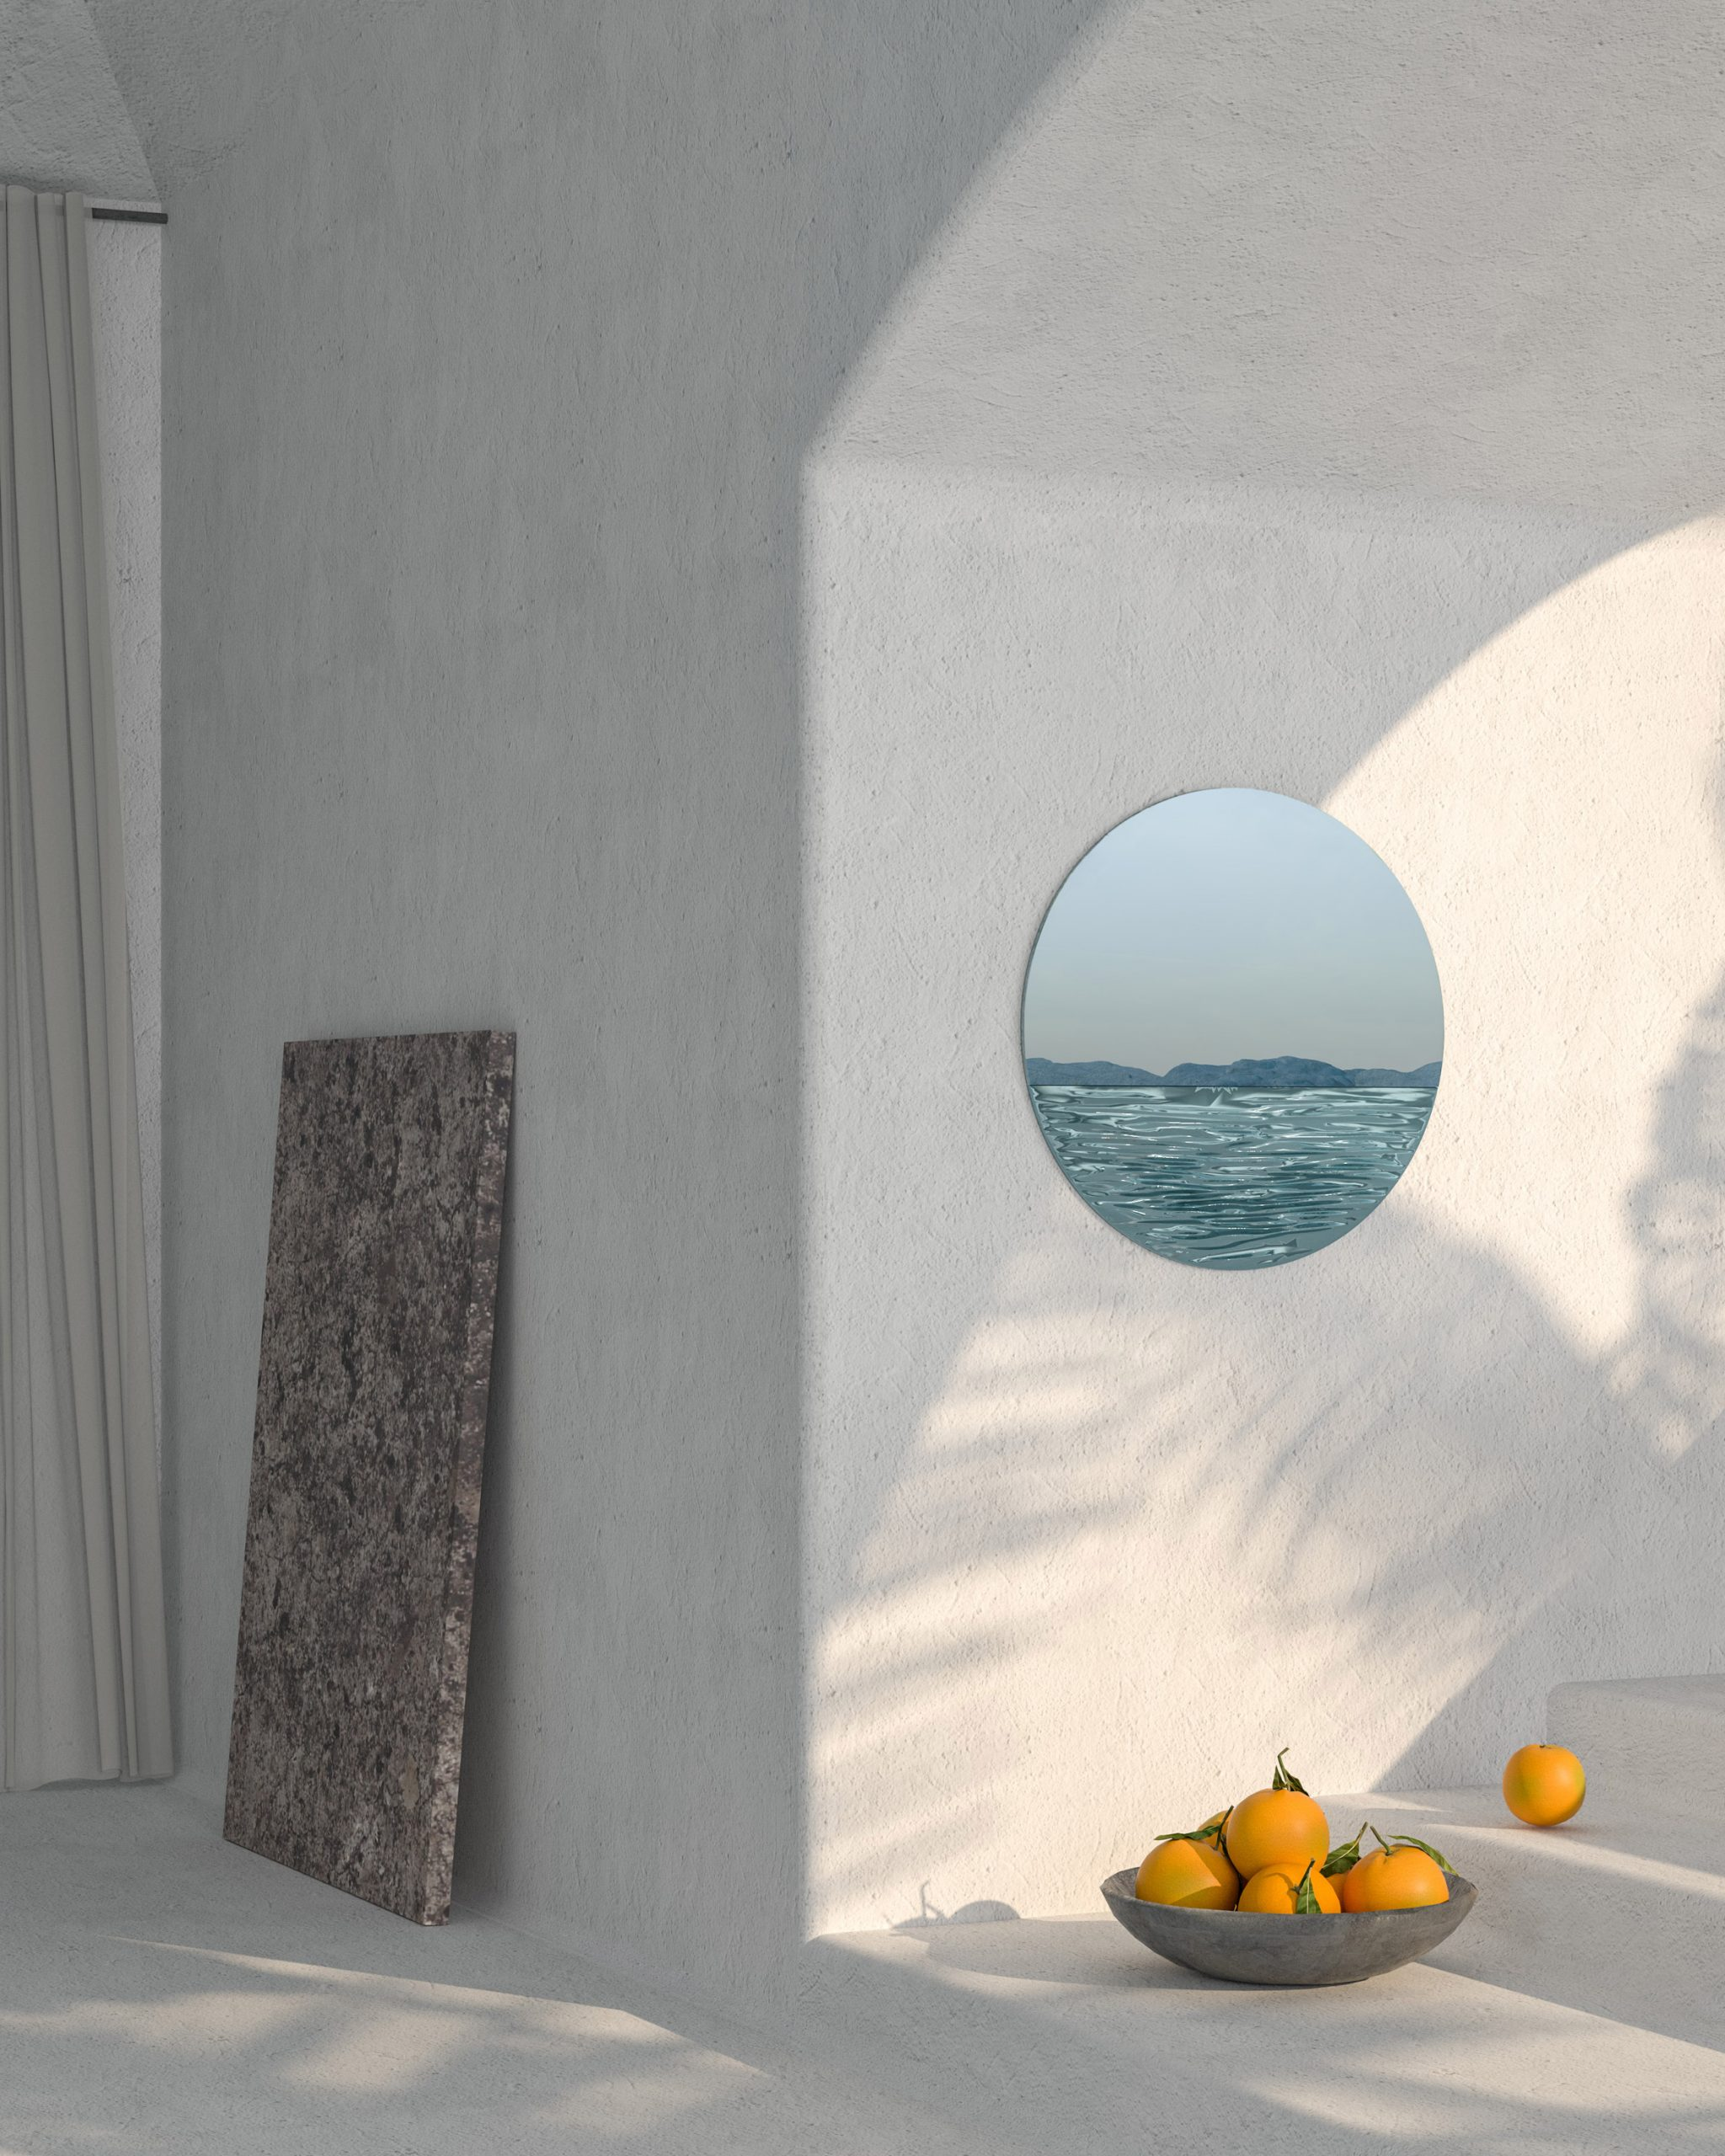 Orizon mirror by Ocrum Studio in moonlight blue rendered in an interior setting